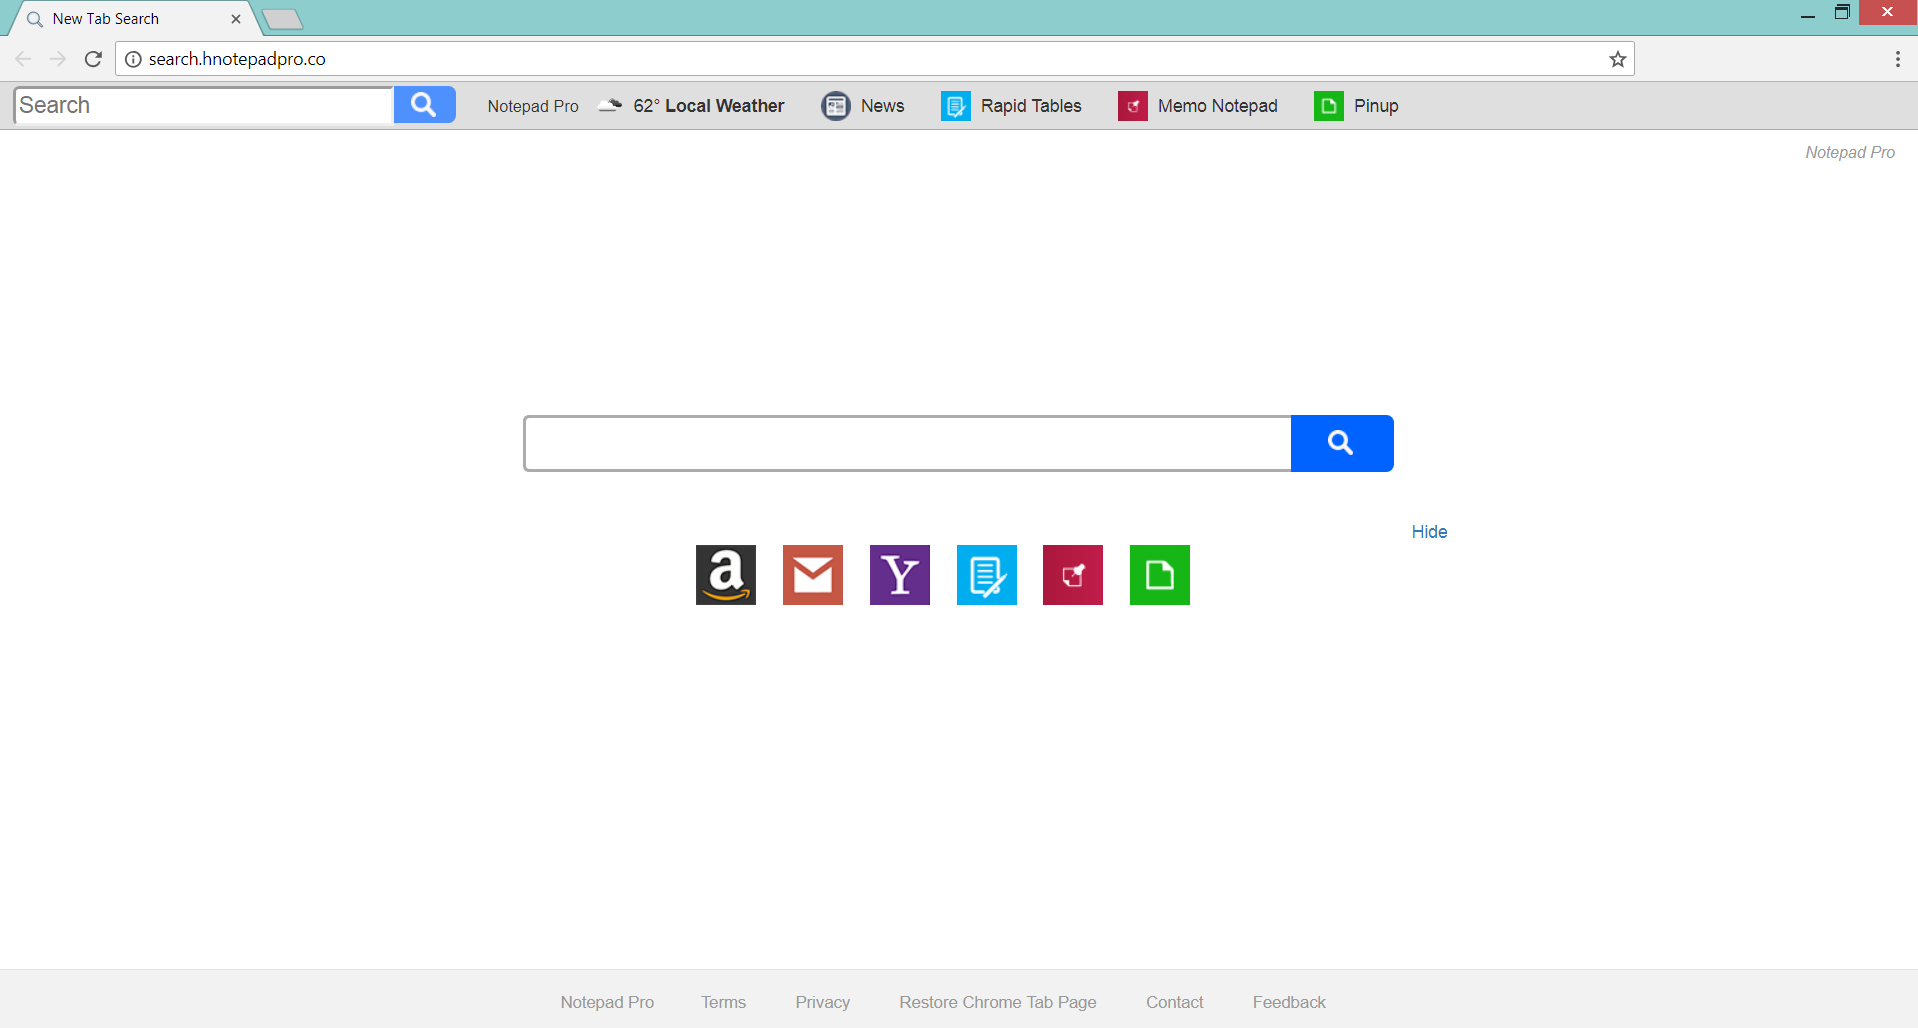 Chrome Brower afectada por Search.hnotepadpro.co secuestrador del navegador